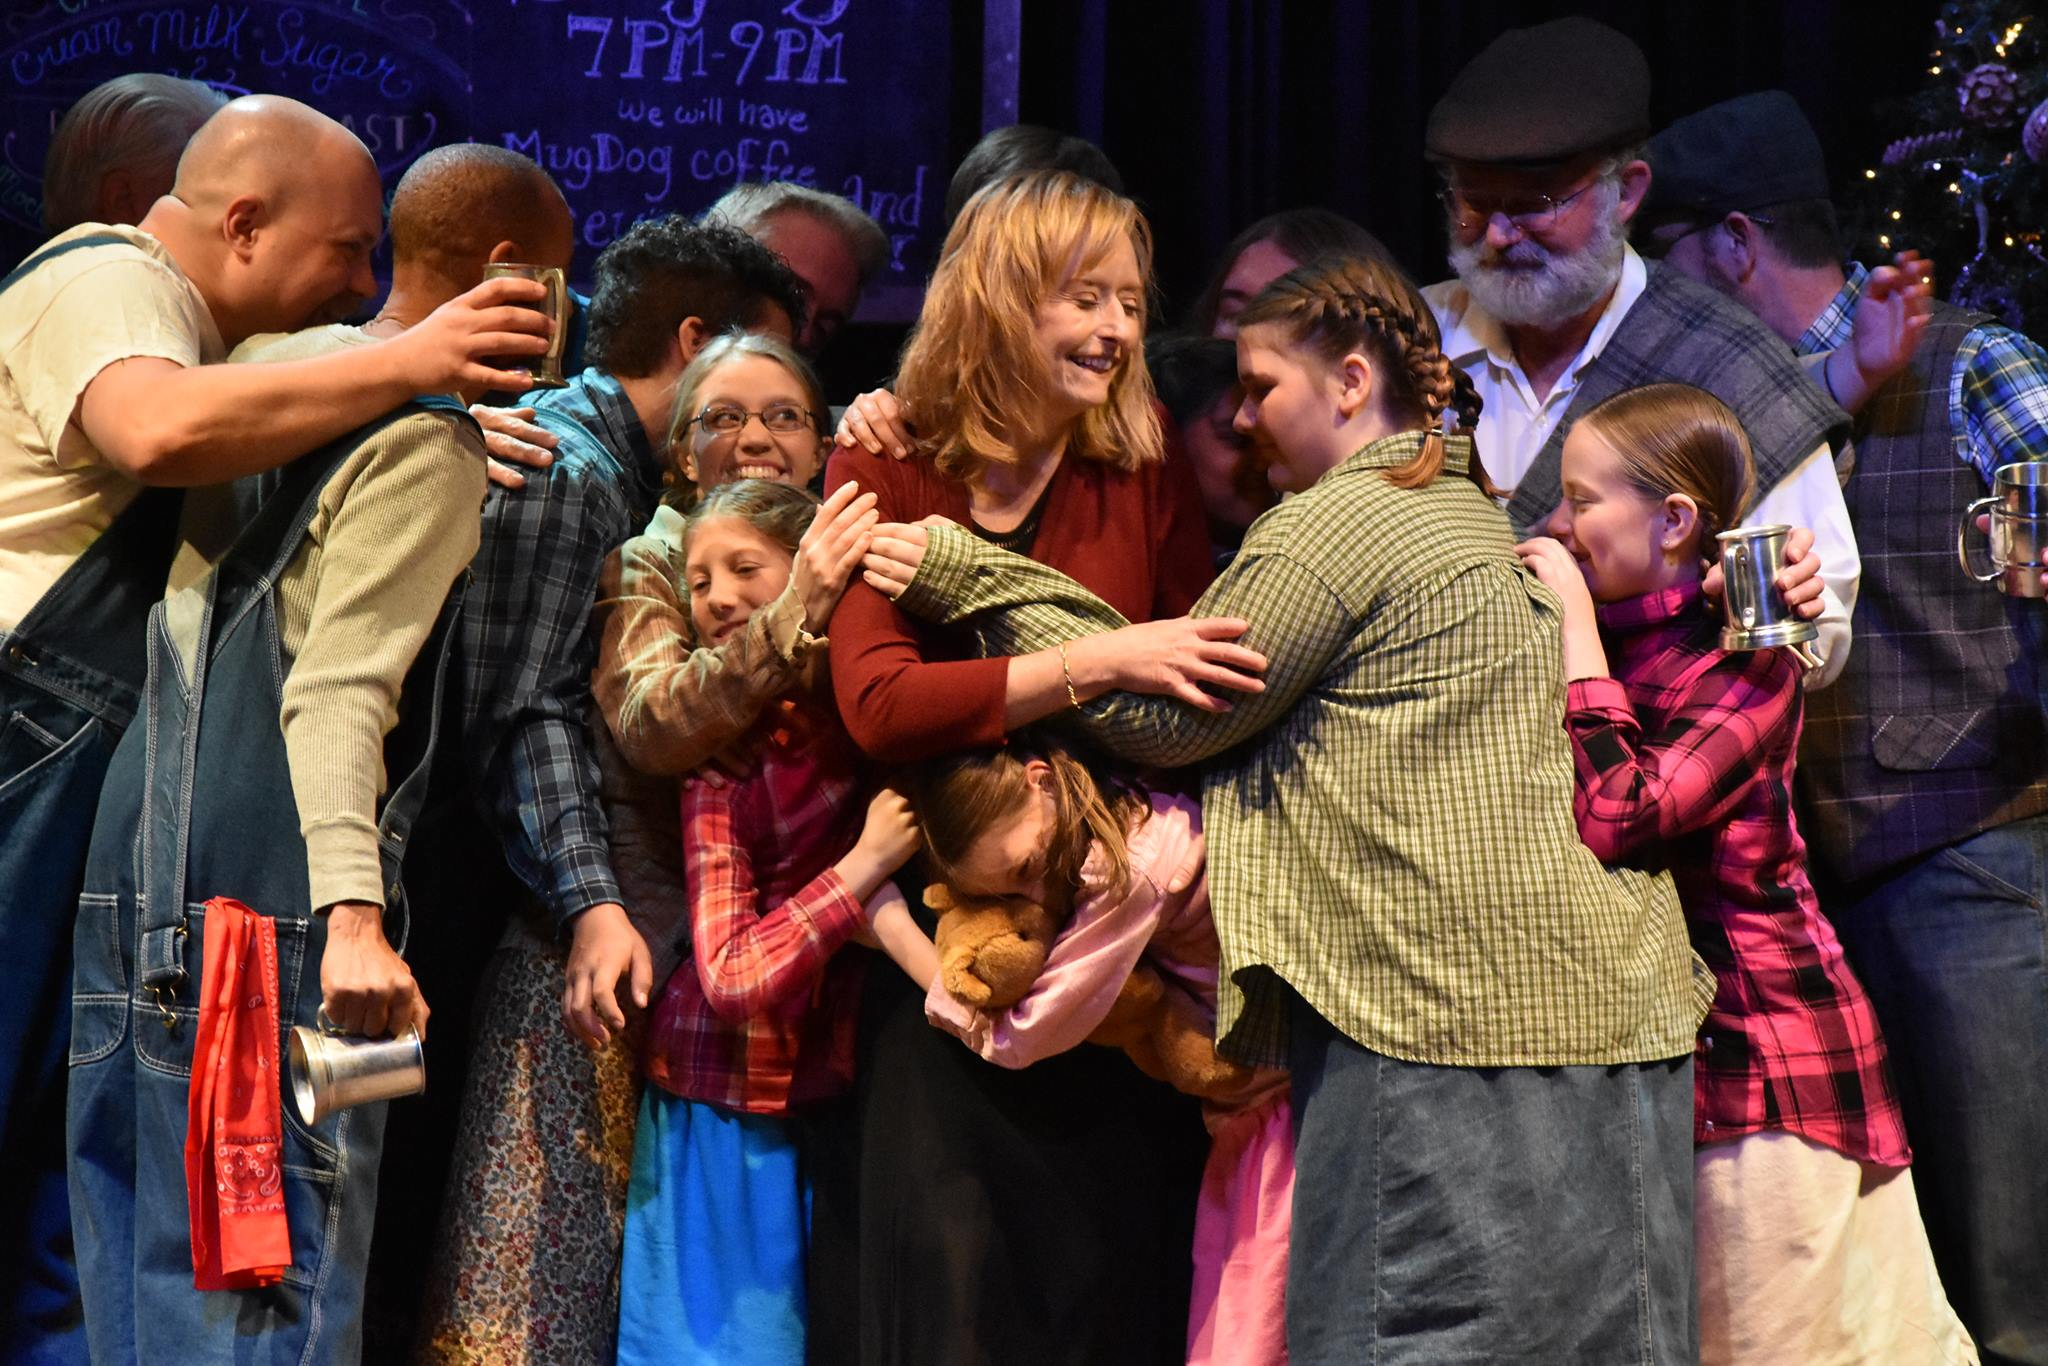 Townsfolk hug Sarah Cannon in Heart of the Holidays 2017